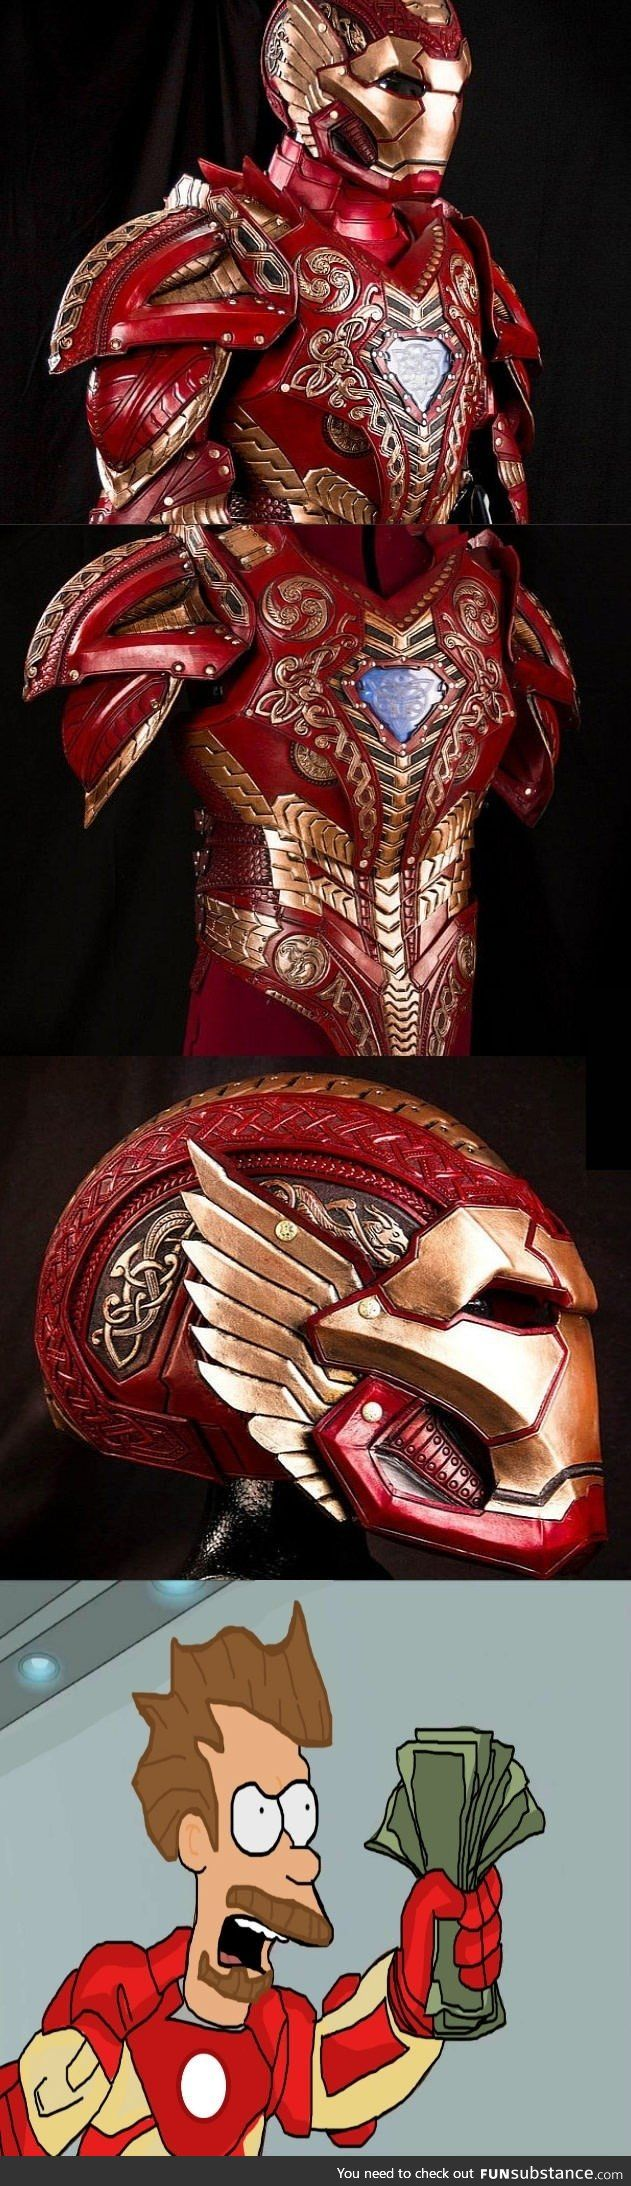 I need this one... Asgardian Iron Man<<<<<<I WANT IT I NEED IT I MUST HAVE THE PRECIOUS